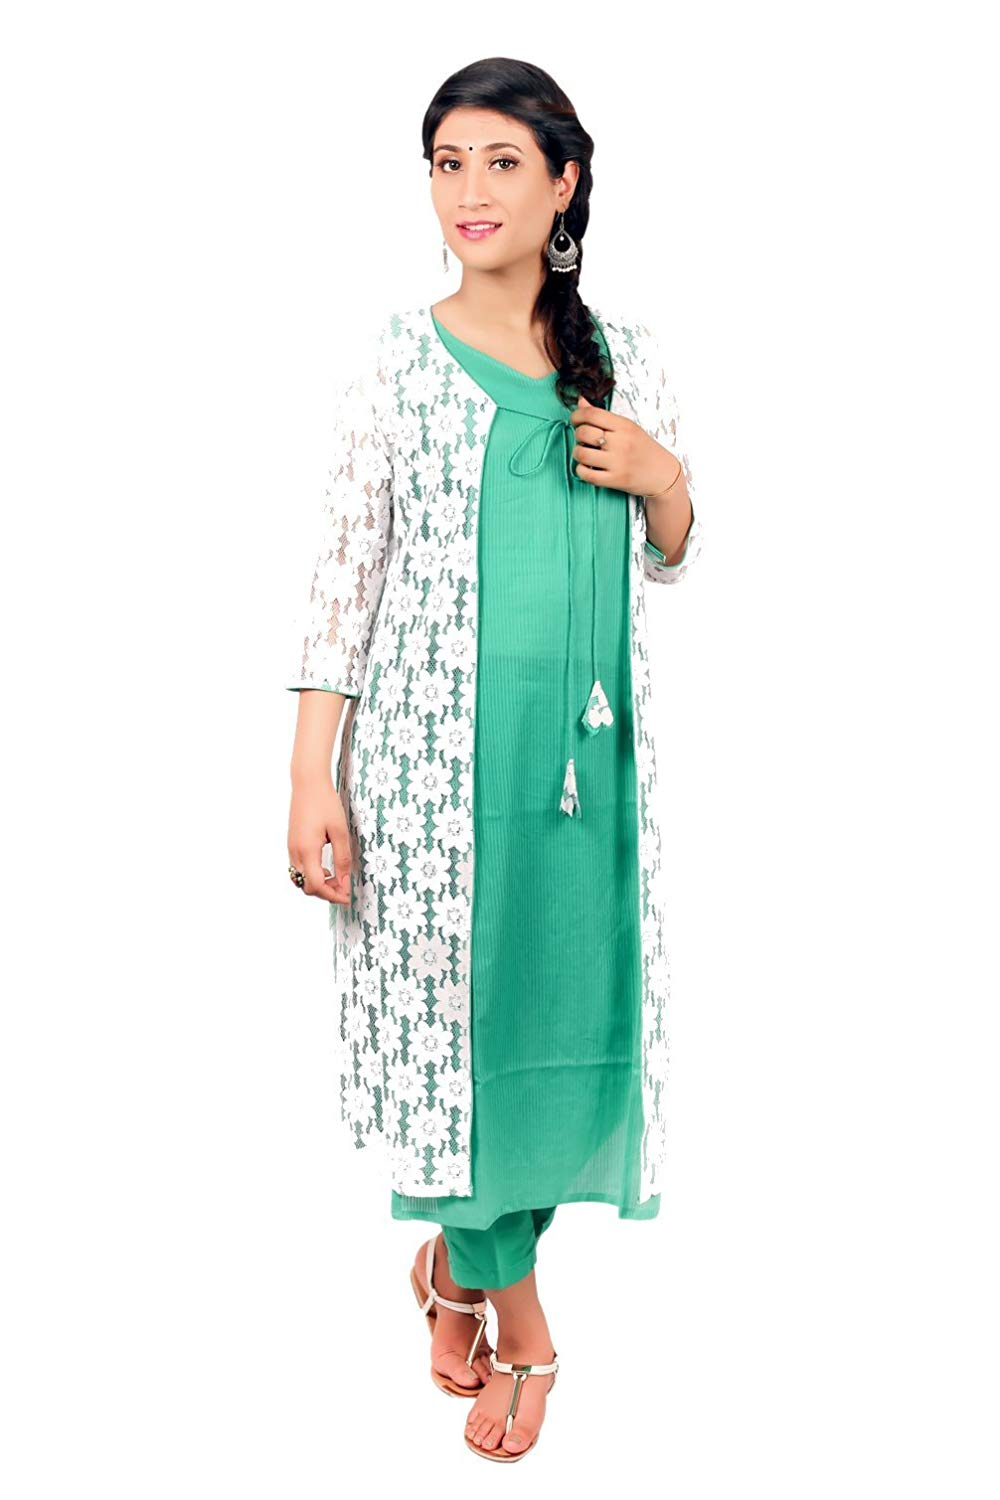 17669b1da3 Get Quotations · meen manifestation Women's Cotton Long Straight Green  Kurti with Net Jacket